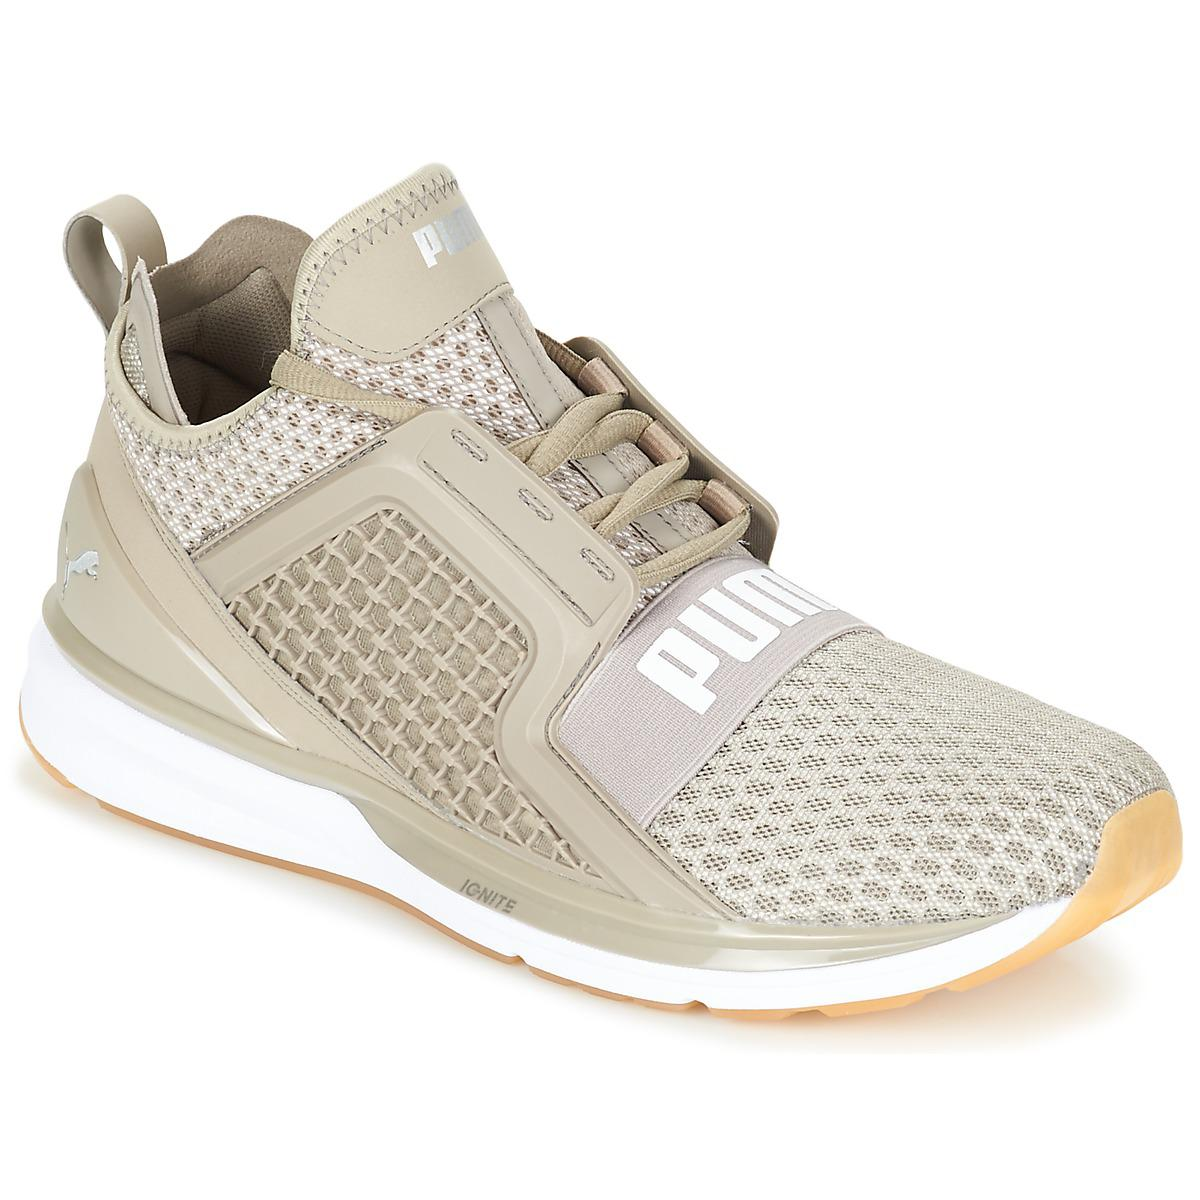 Puma Limitless Ignite Shoes (trainers) in Gray for Men - Lyst b87a7c7ec